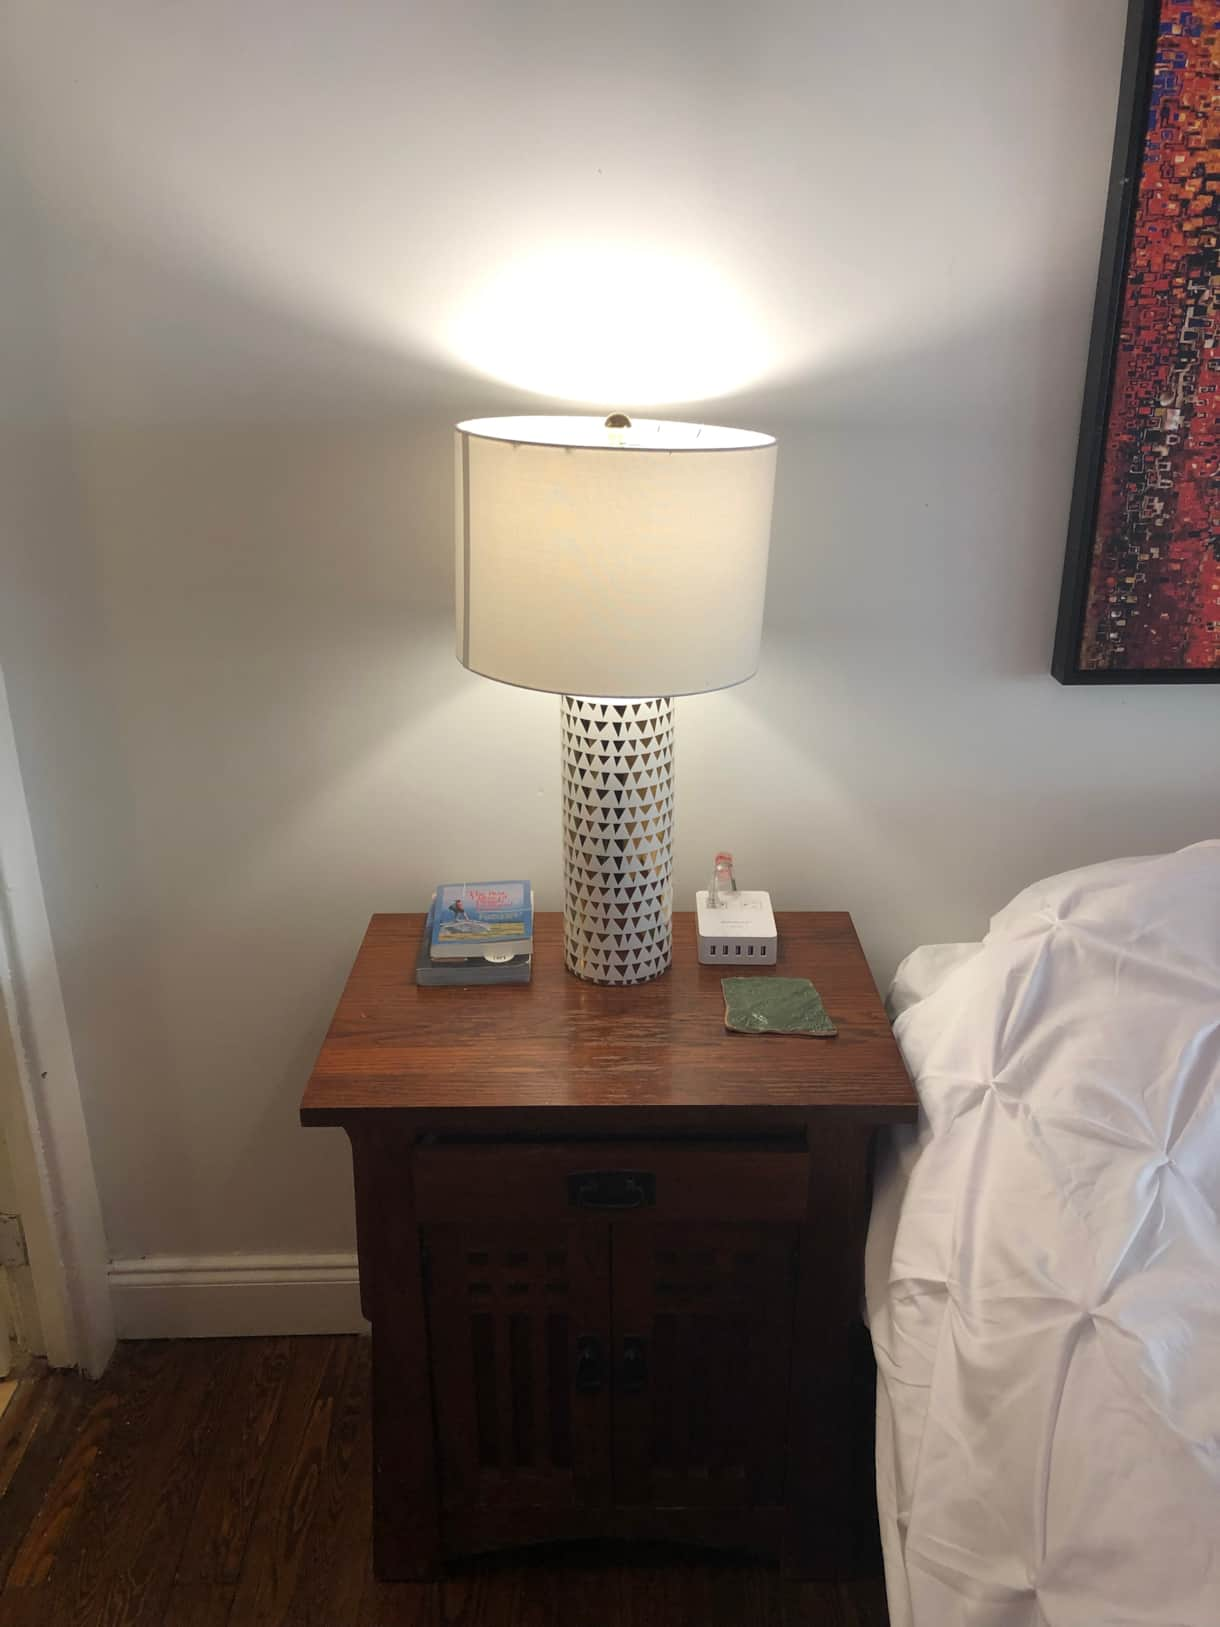 night stands with USB and outlets